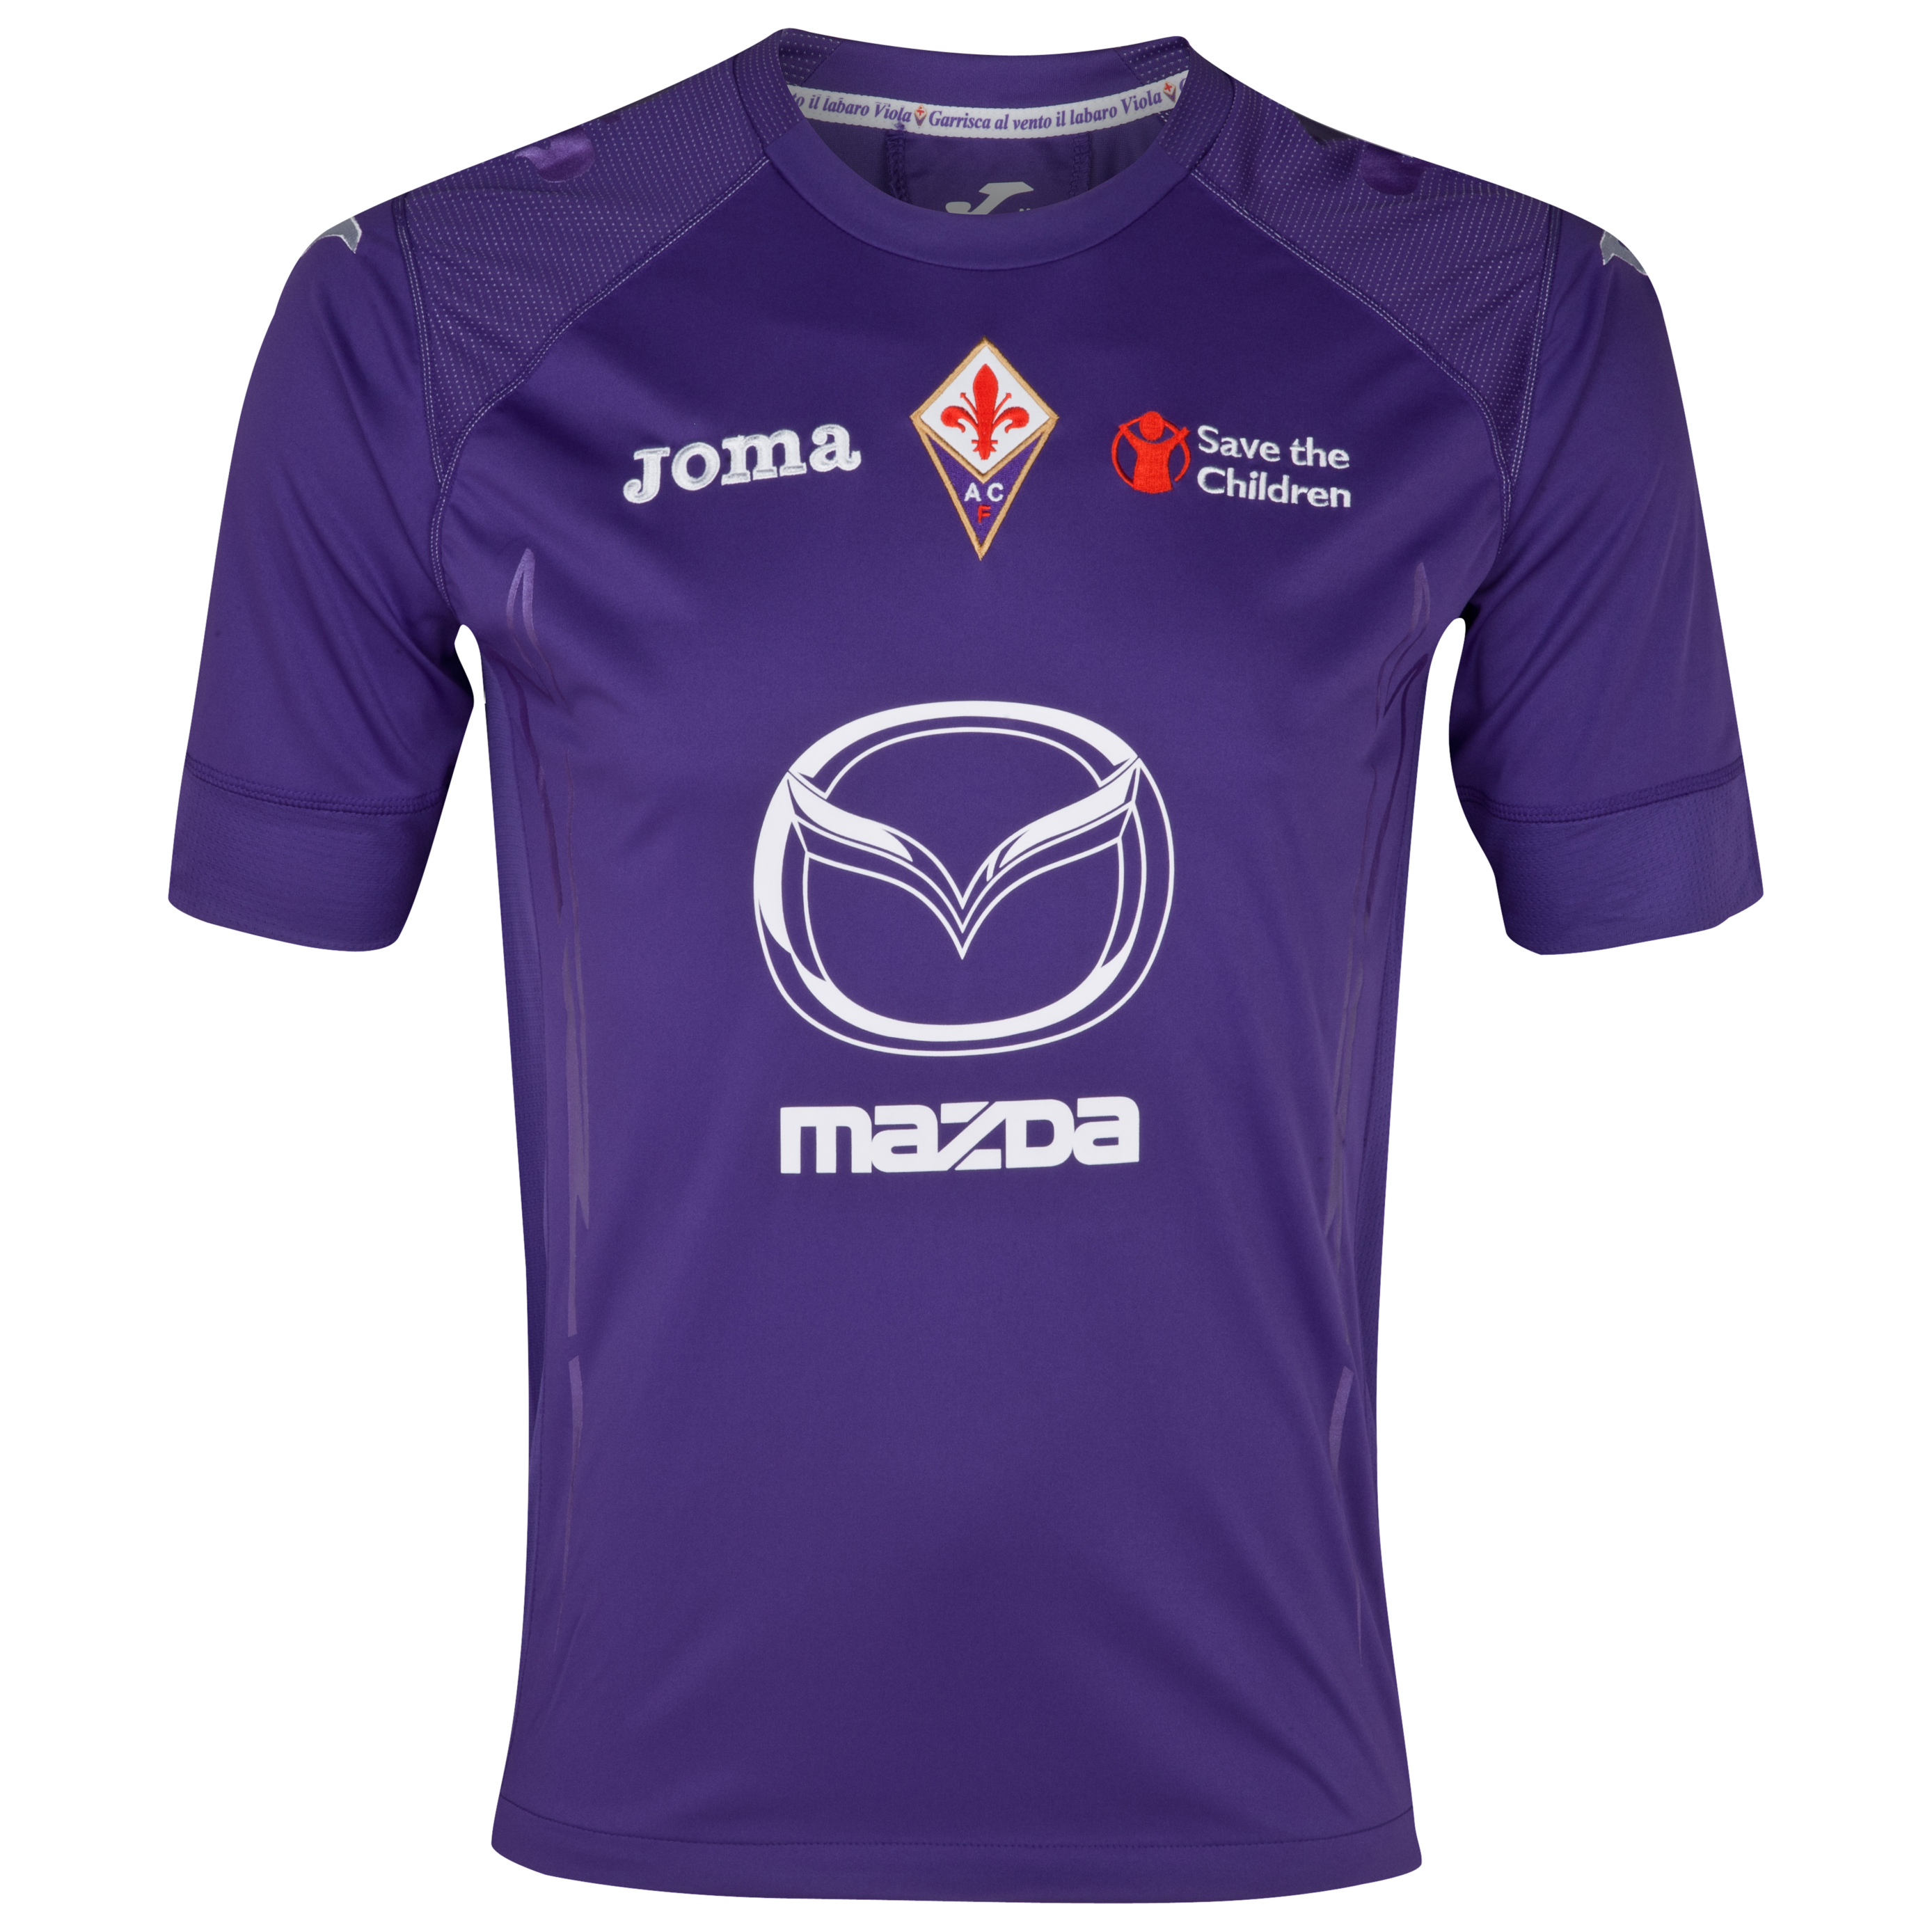 Fiorentina Home Shirt 2012/13